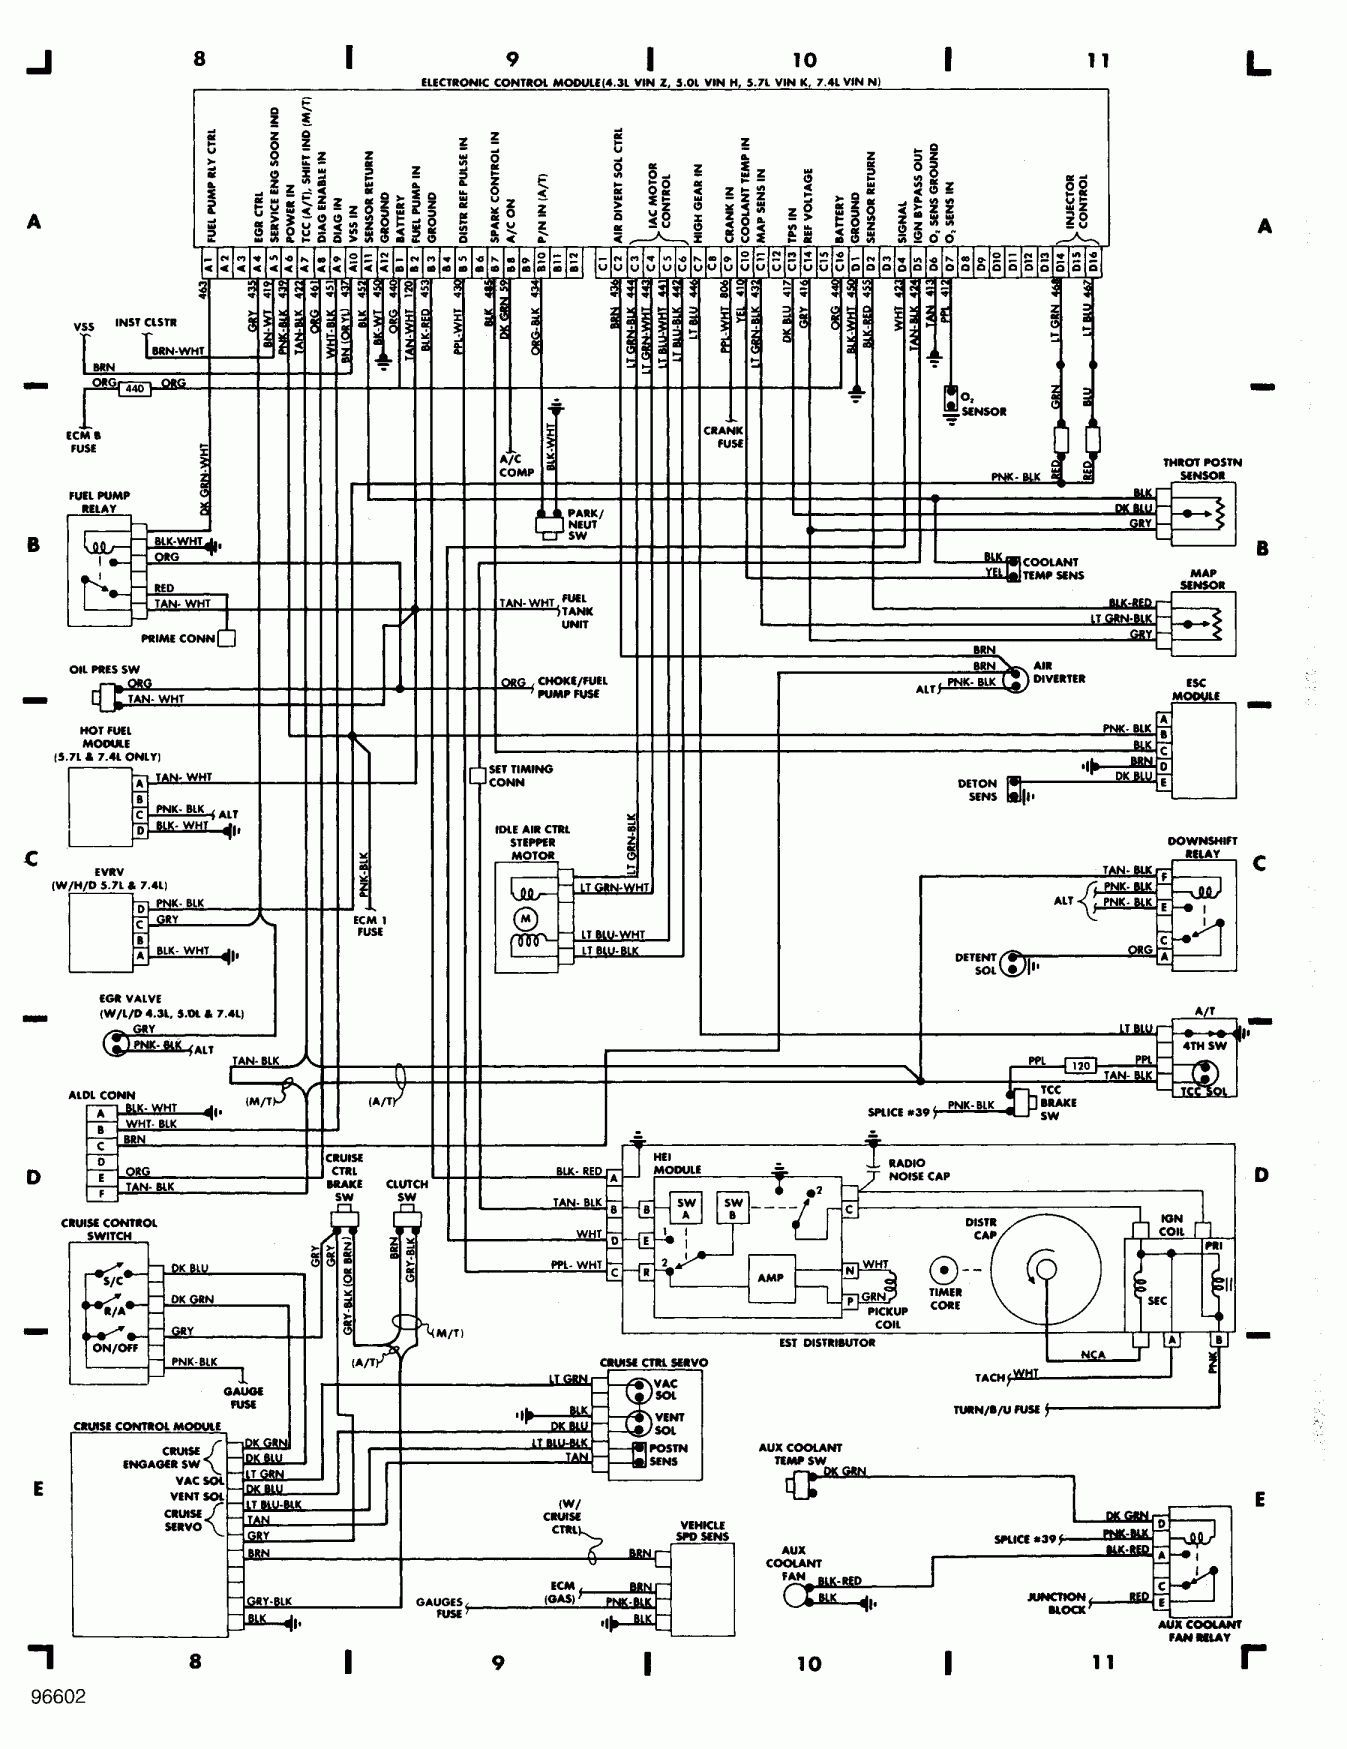 Wiring Diagram For 57 Thunderbird Schematic And Wiring Diagram Chevy 1500 Widebody Ferrari Ferrari Convertible